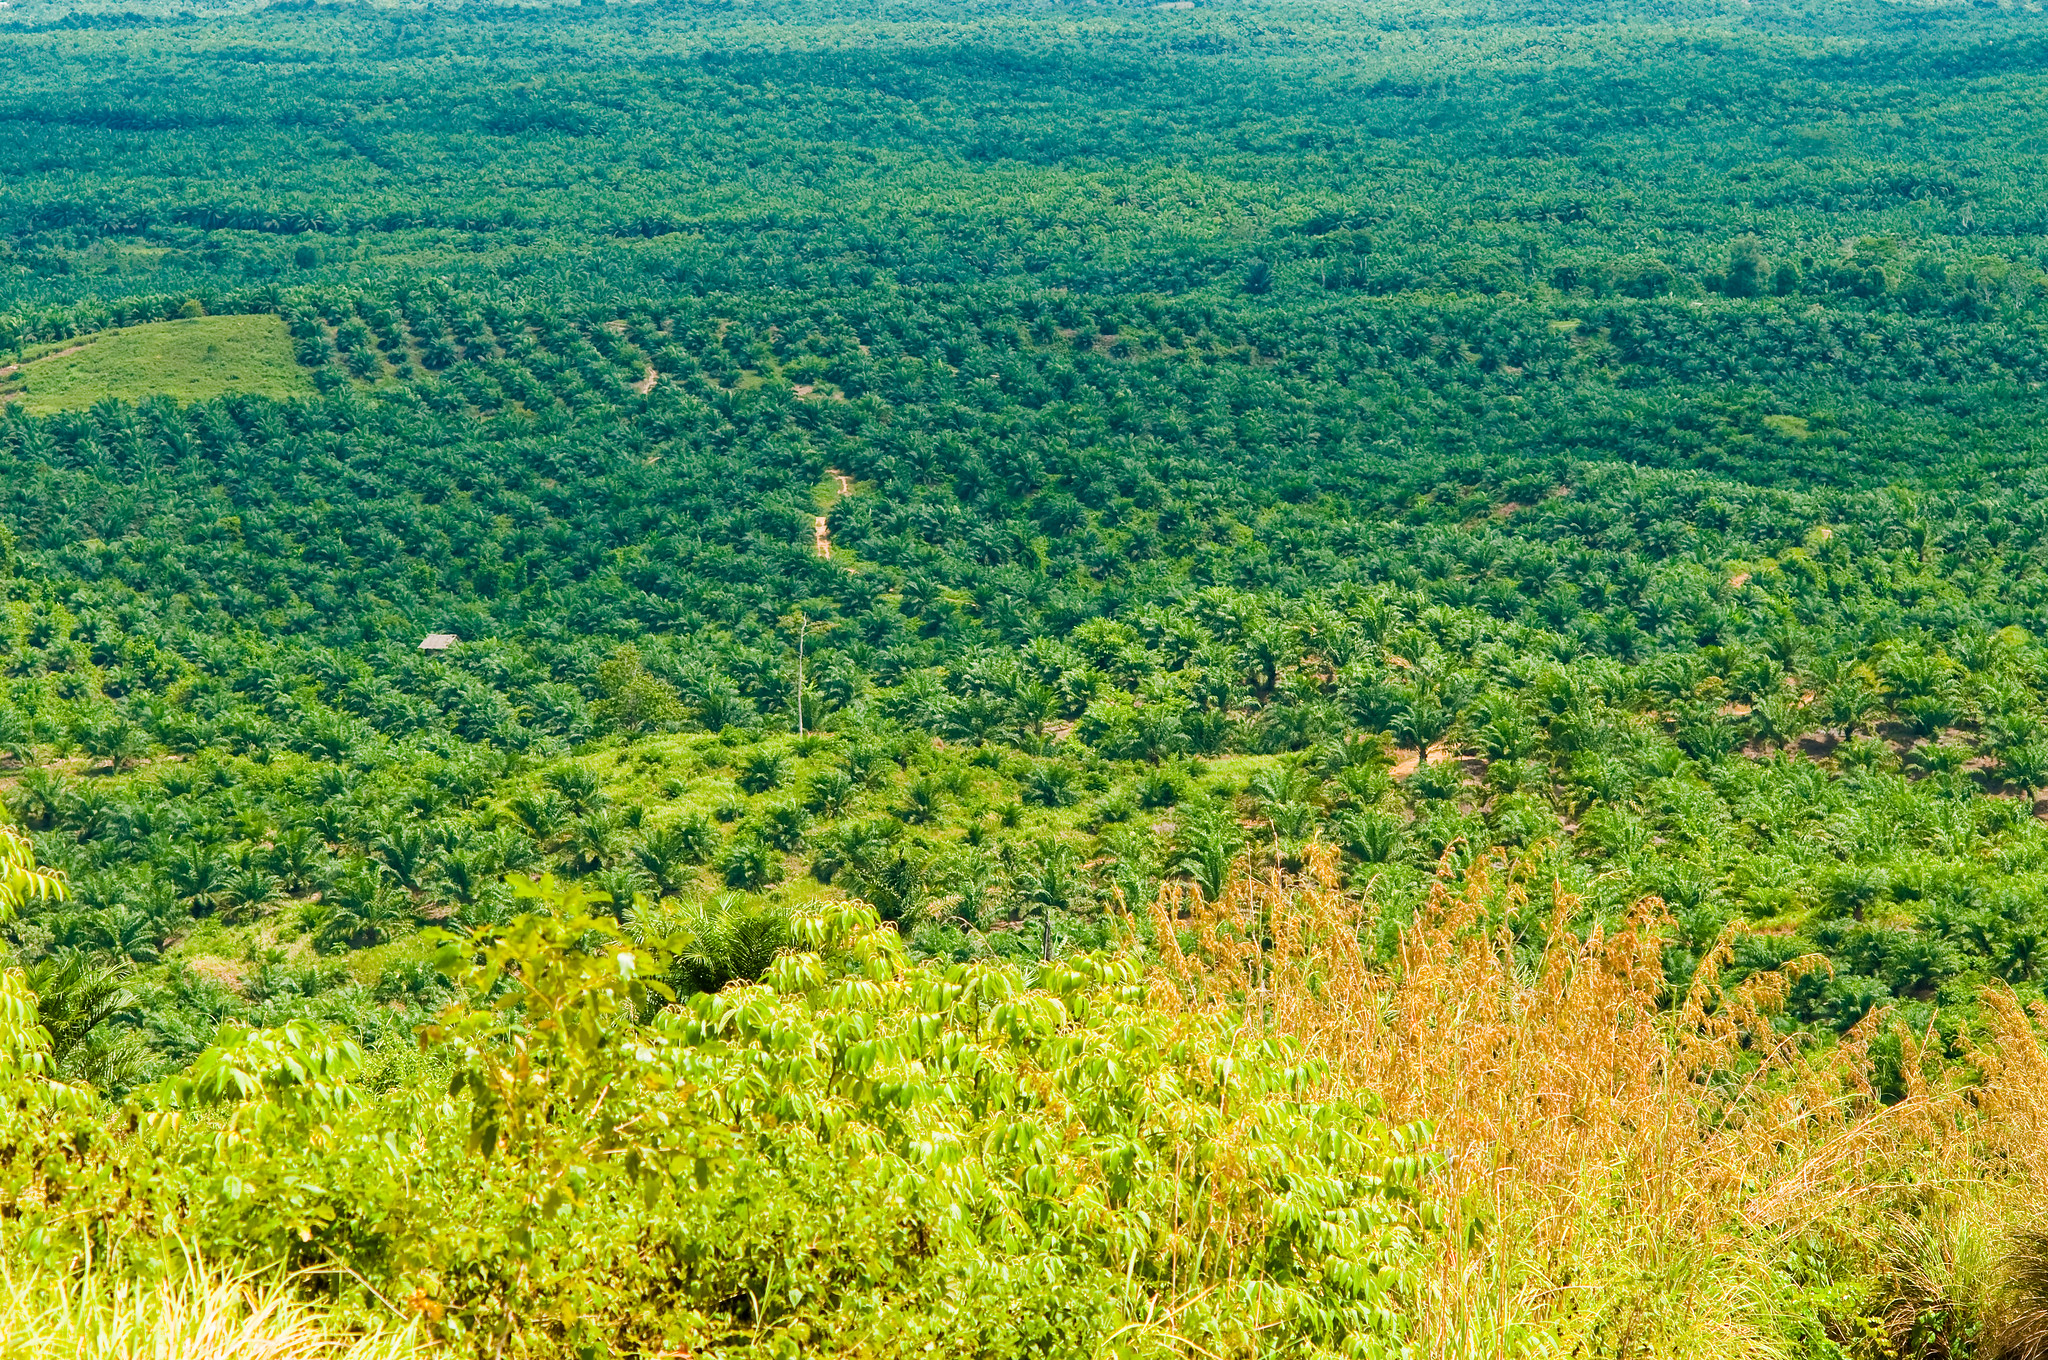 A palm oil plantation in Indonesia. India is primarily dependent on Indonesia and Malaysia for import of palm oil. Photo by Moses Ceaser (CIFOR)/Flickr.